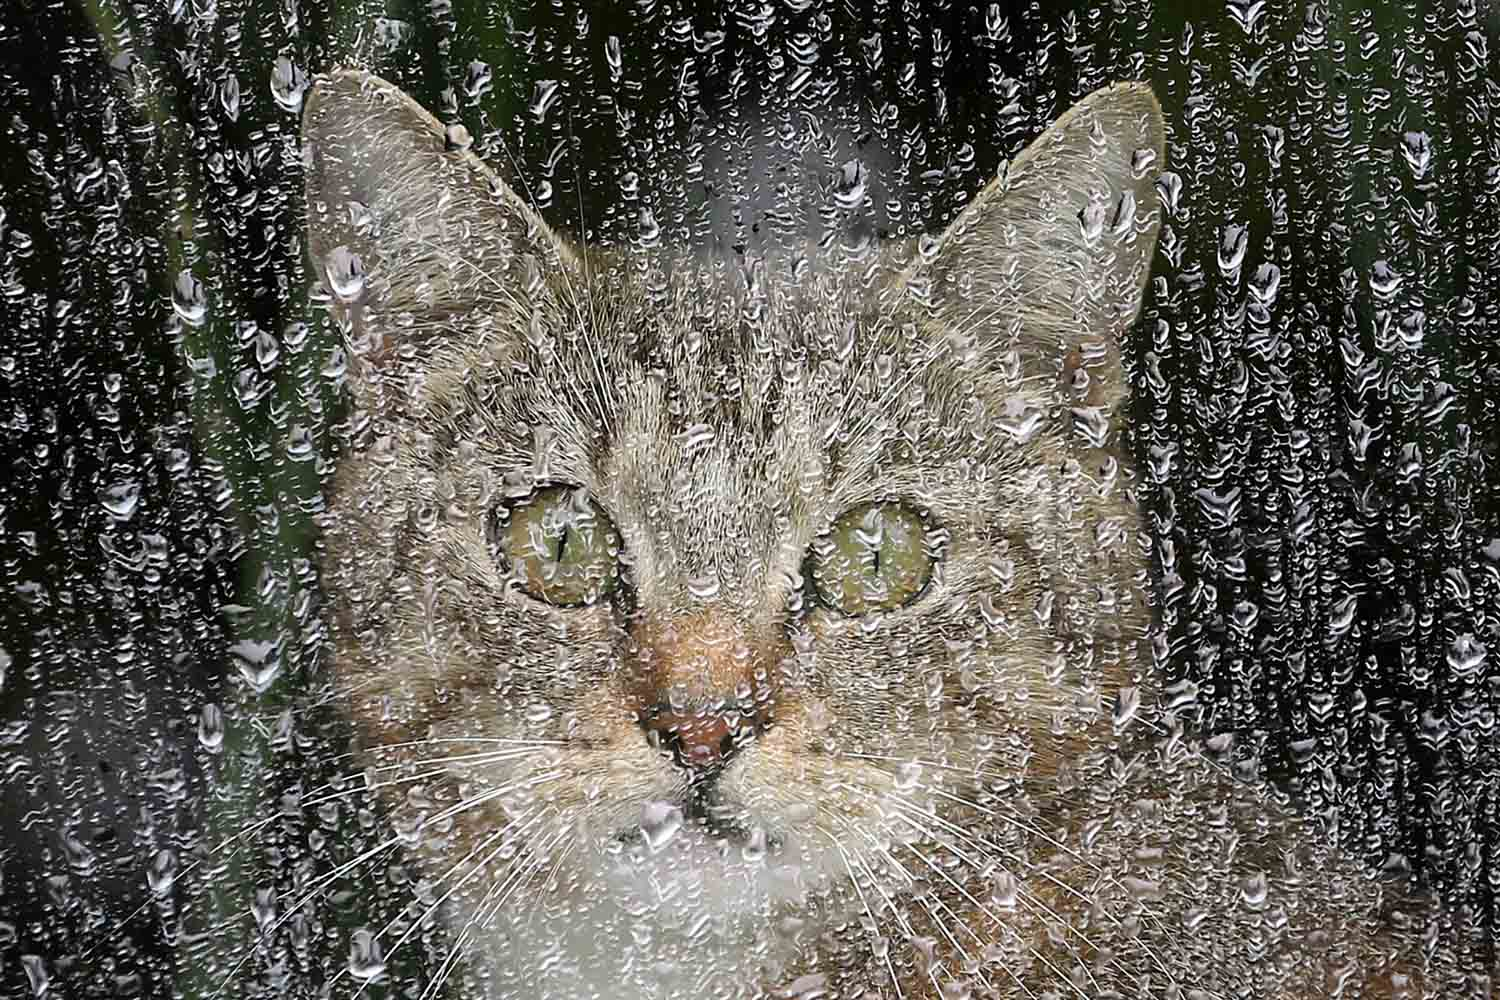 May 31, 2013. A cat sits behind a window covered in raindrops in Berlin. Meteorologists forecast further rainfalls for the following days in wide parts of the country.